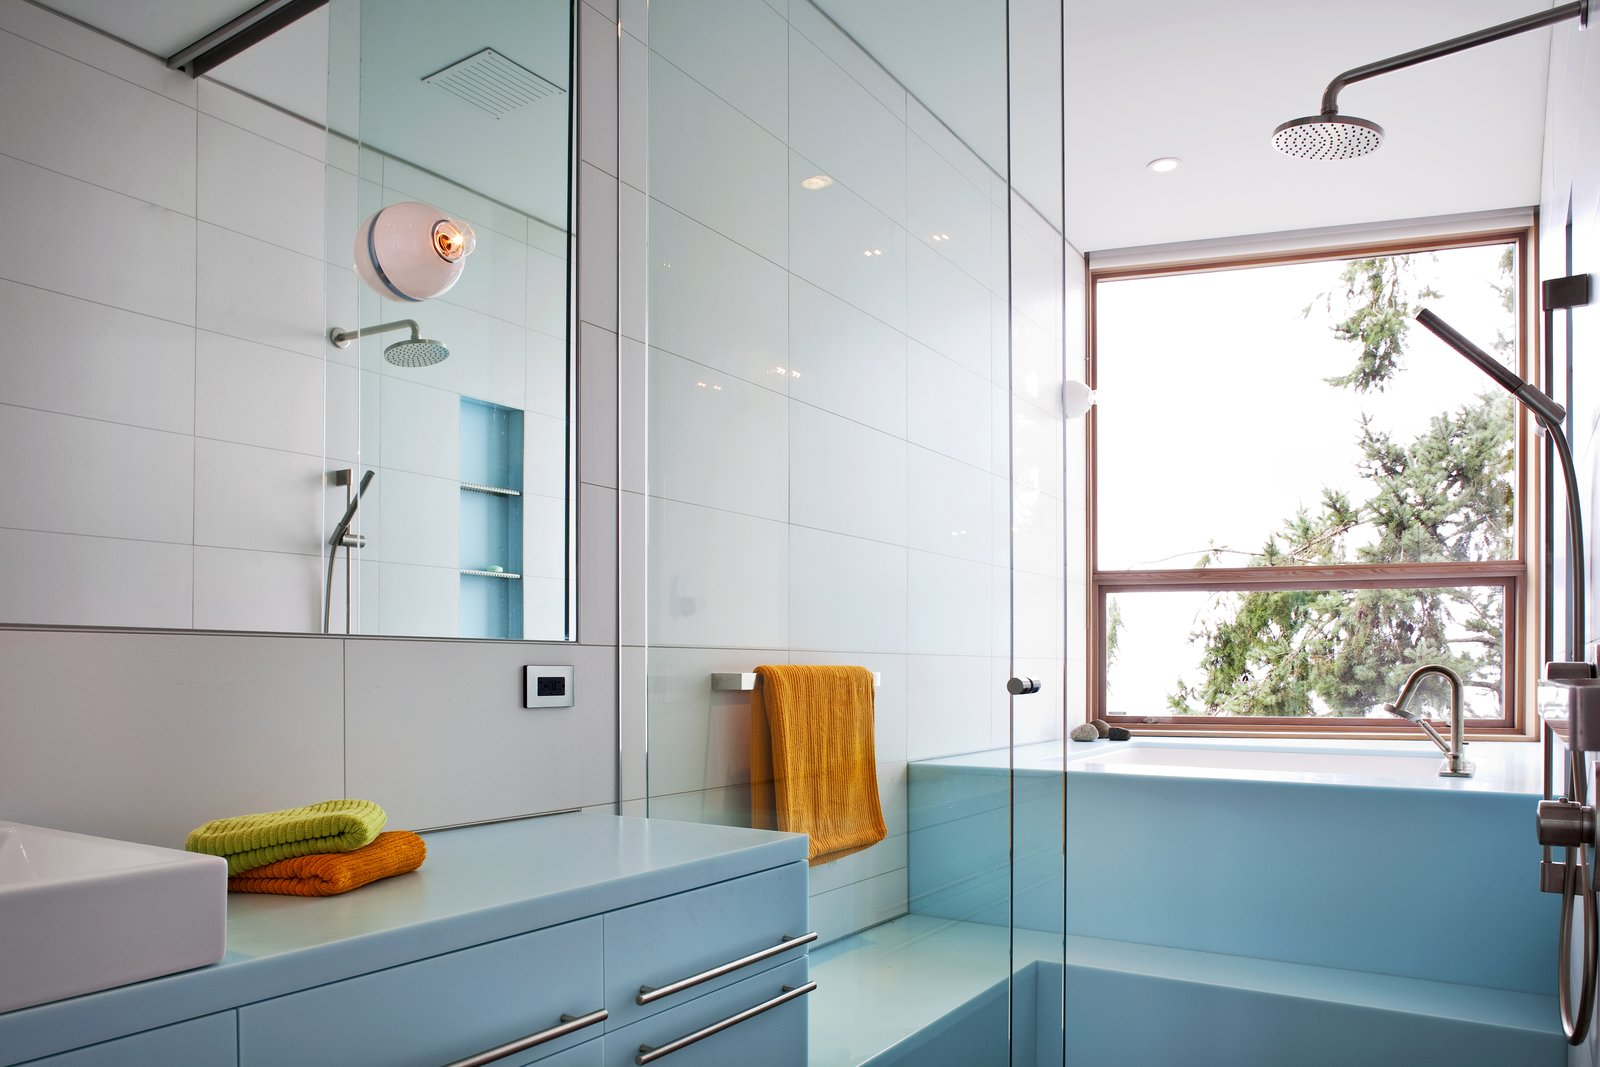 The pale blue of this bathroom in the main house creates a peaceful, serene atmosphere. The seating shower stalls, and a tub that provides a view to the outdoors makes for an incredibly luxurious, rejuvenating experience.   #paleblue #bathroom #shower #bath #tub #color #bright #beachhouse #glass #showerdoor #minimal #modern #relaxing #spa #interstice #intersticearchitects #interiorarchitecture #bathroomdesign #bradlaughton #bradlaughtonphotography   TreeHugger